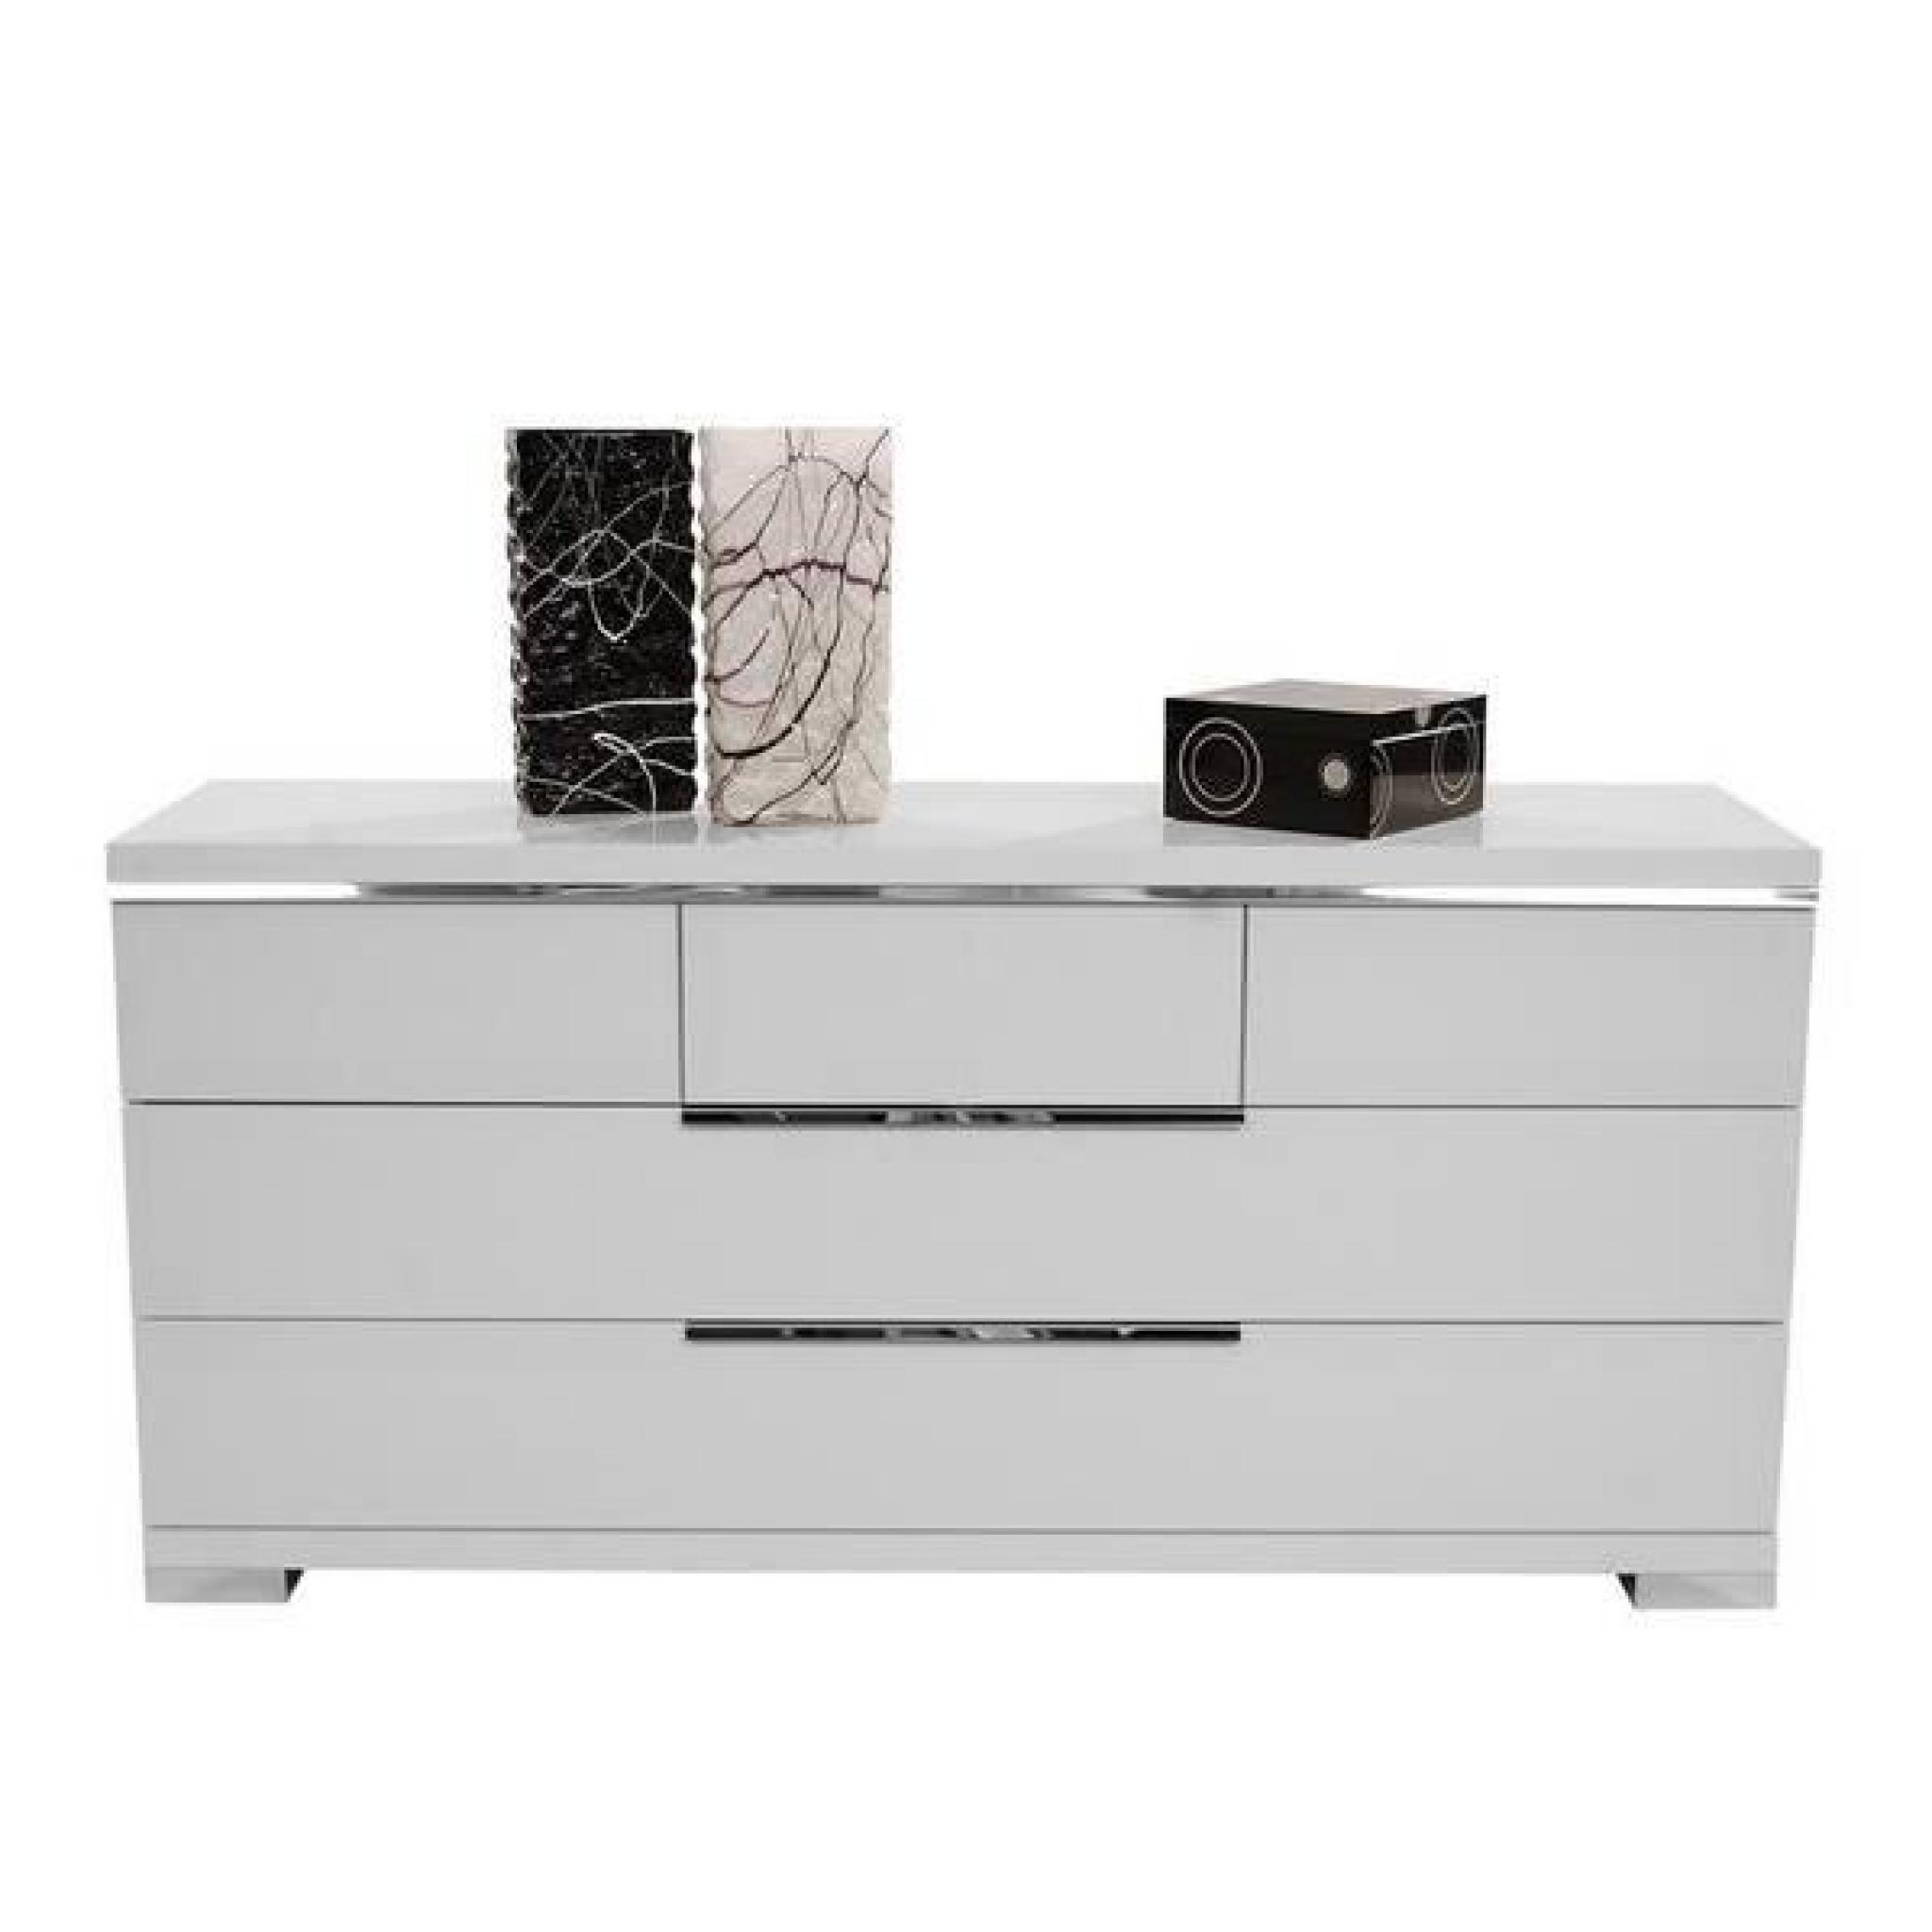 commode glossy blanc 6 tiroirs achat vente commode pas. Black Bedroom Furniture Sets. Home Design Ideas